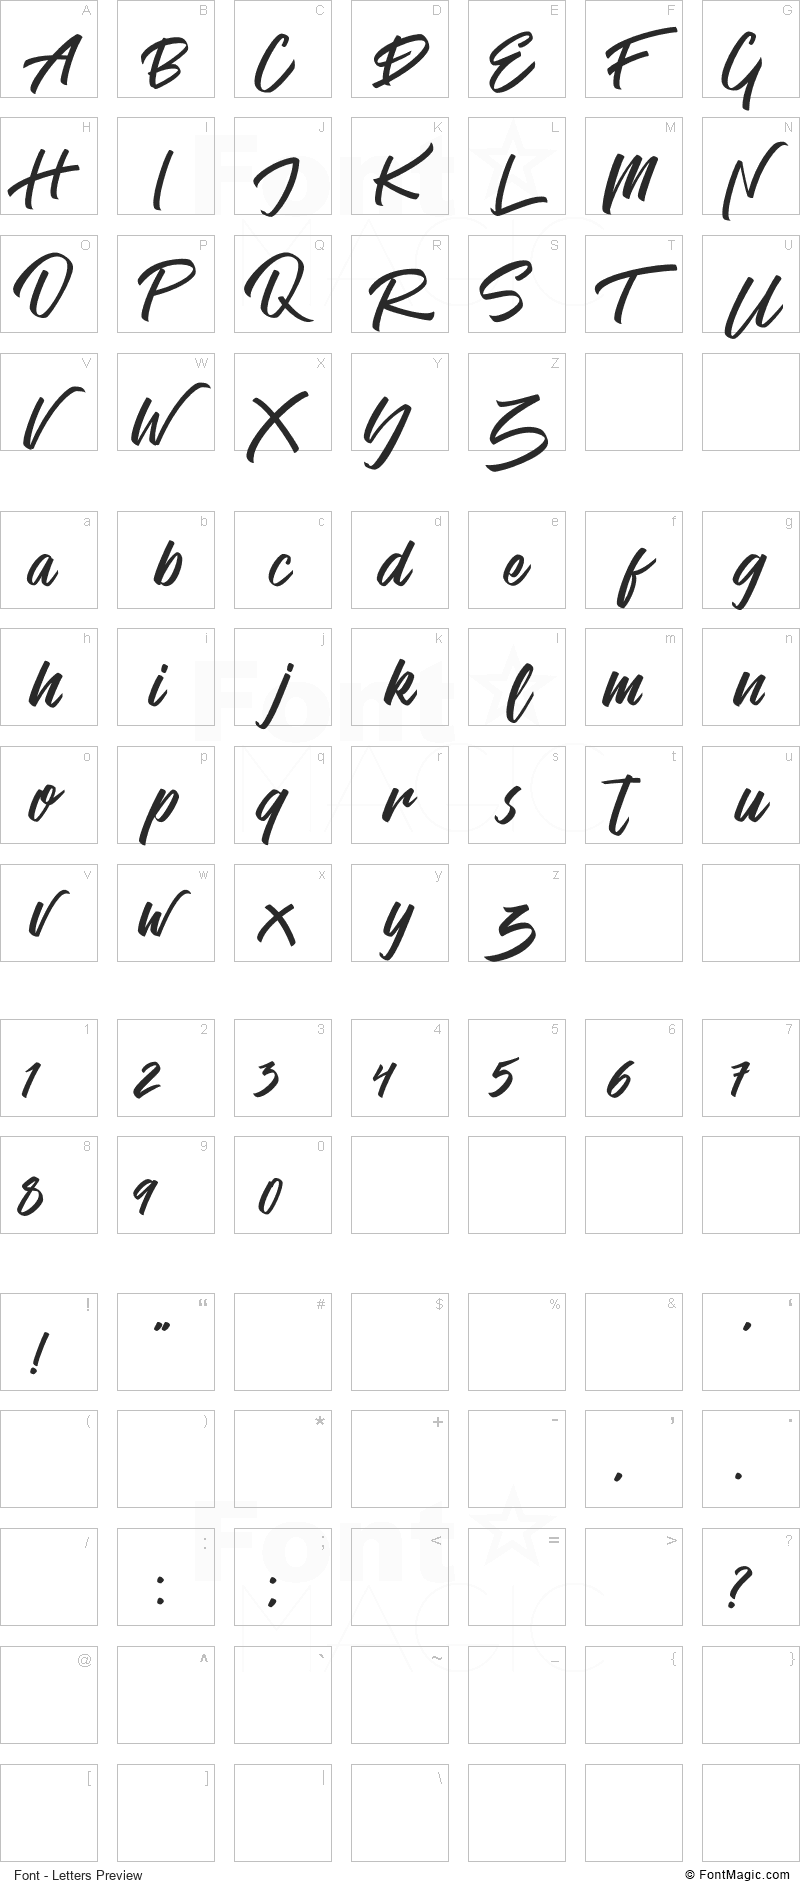 Venetian Font - All Latters Preview Chart